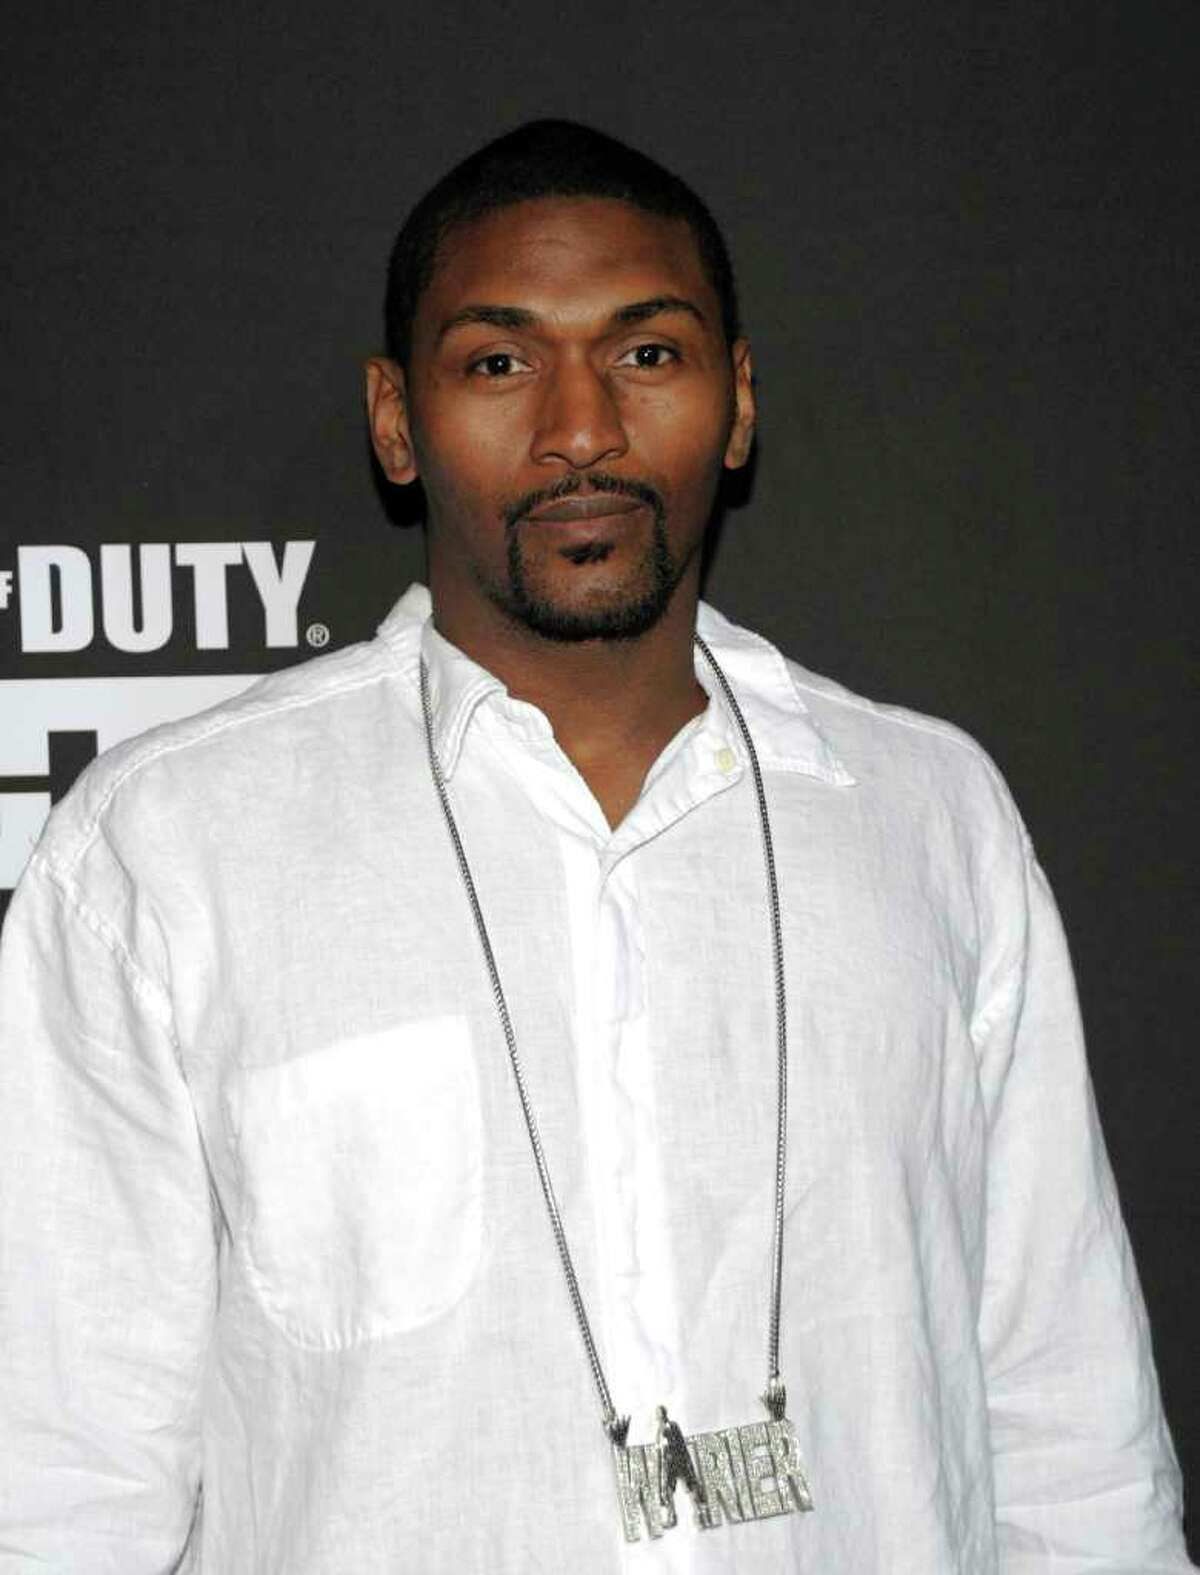 Athlete Ron Artest arrives at the Call of Duty: Modern Warfare 3 launch party in Los Angeles on Saturday, Sept. 3, 2011. (AP Photo/Dan Steinberg)